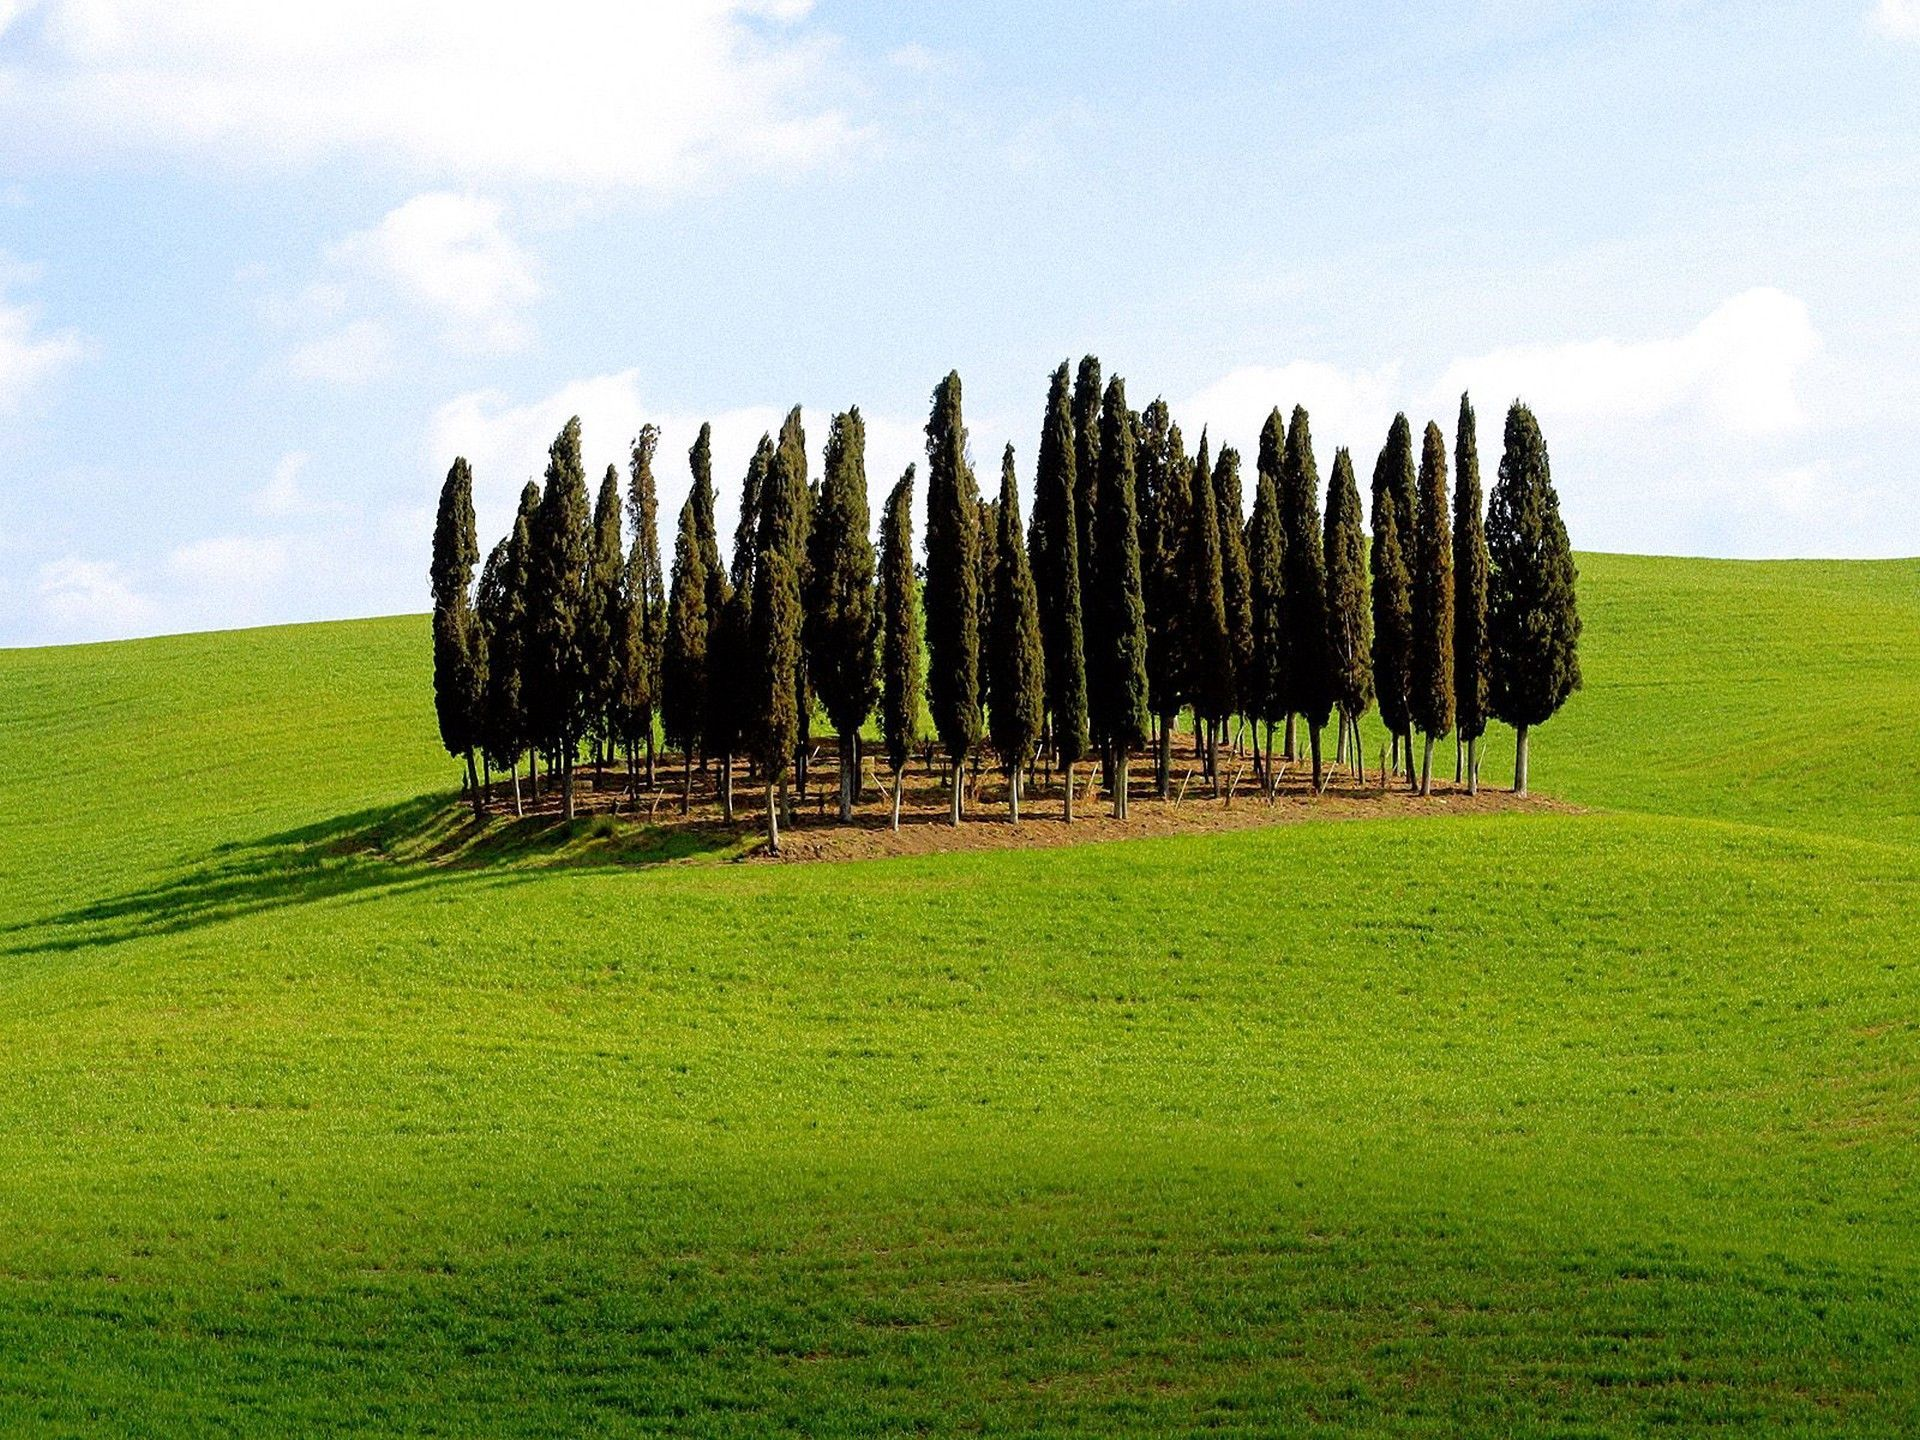 Italy Nature 1920x1440 HD Wallpapers Pack 2 - Photo 8 of 15 ...